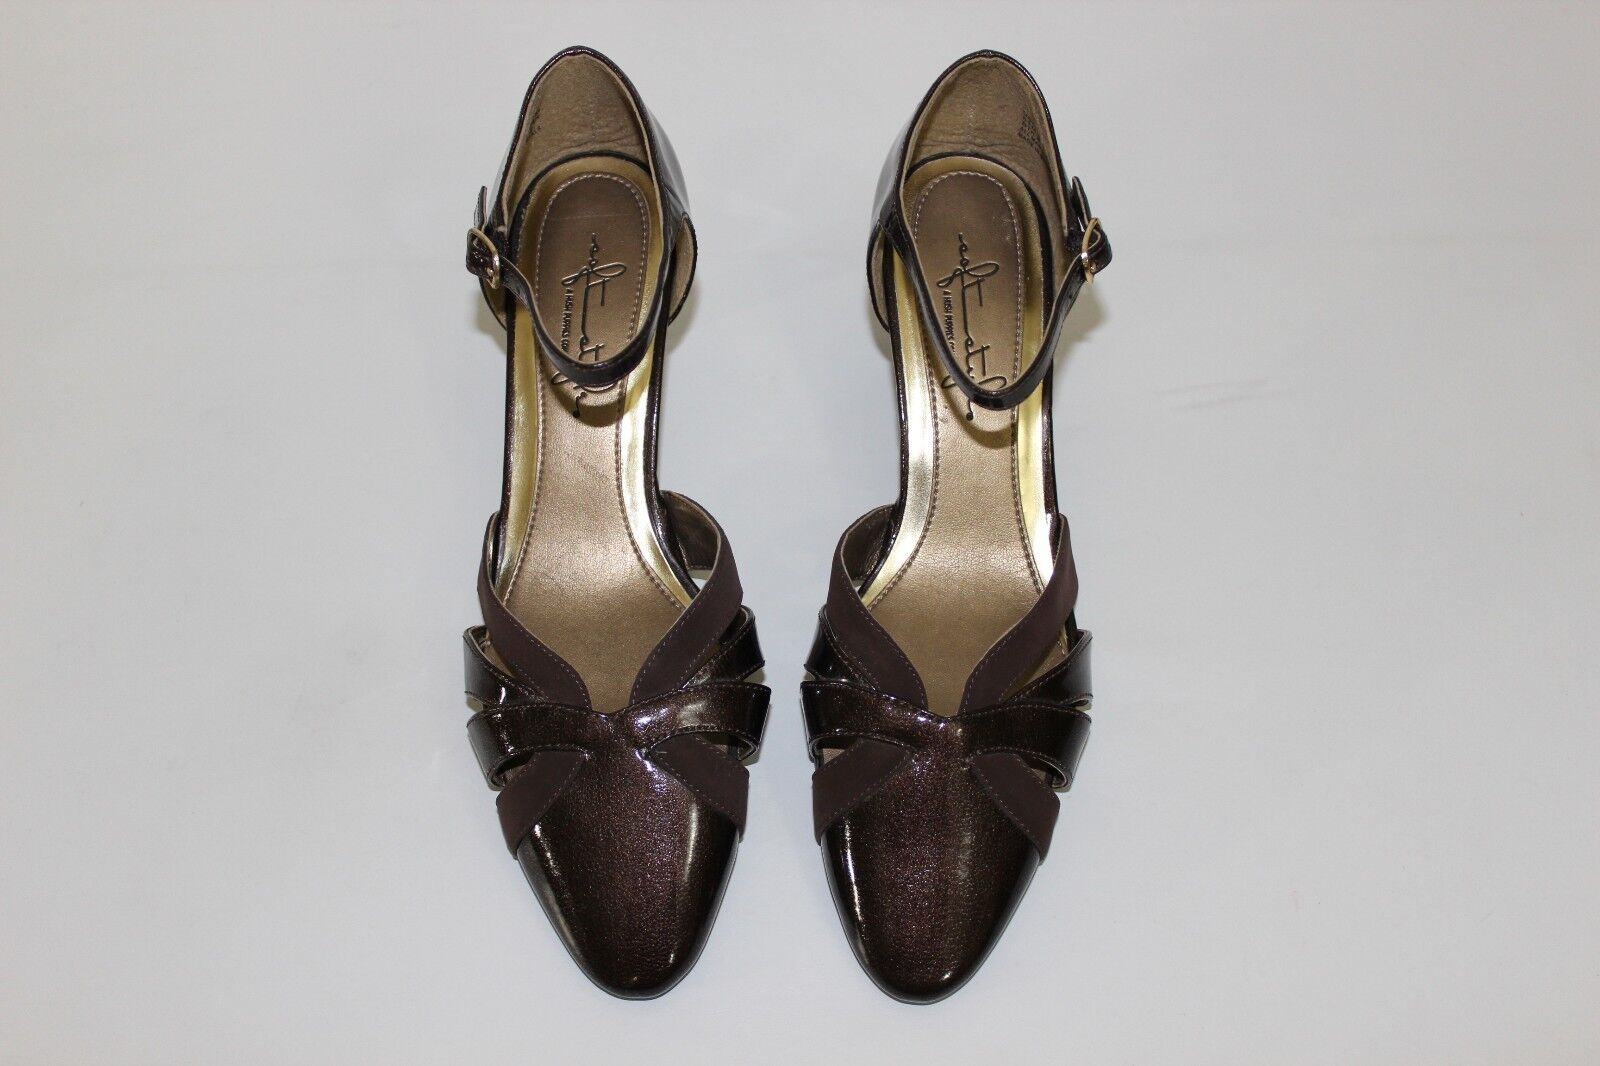 Soft Style Hush Puppies Womens Sz 6.5 M Pumps Brown Strappy High Heels Pumps M Shoes NEW 67d055